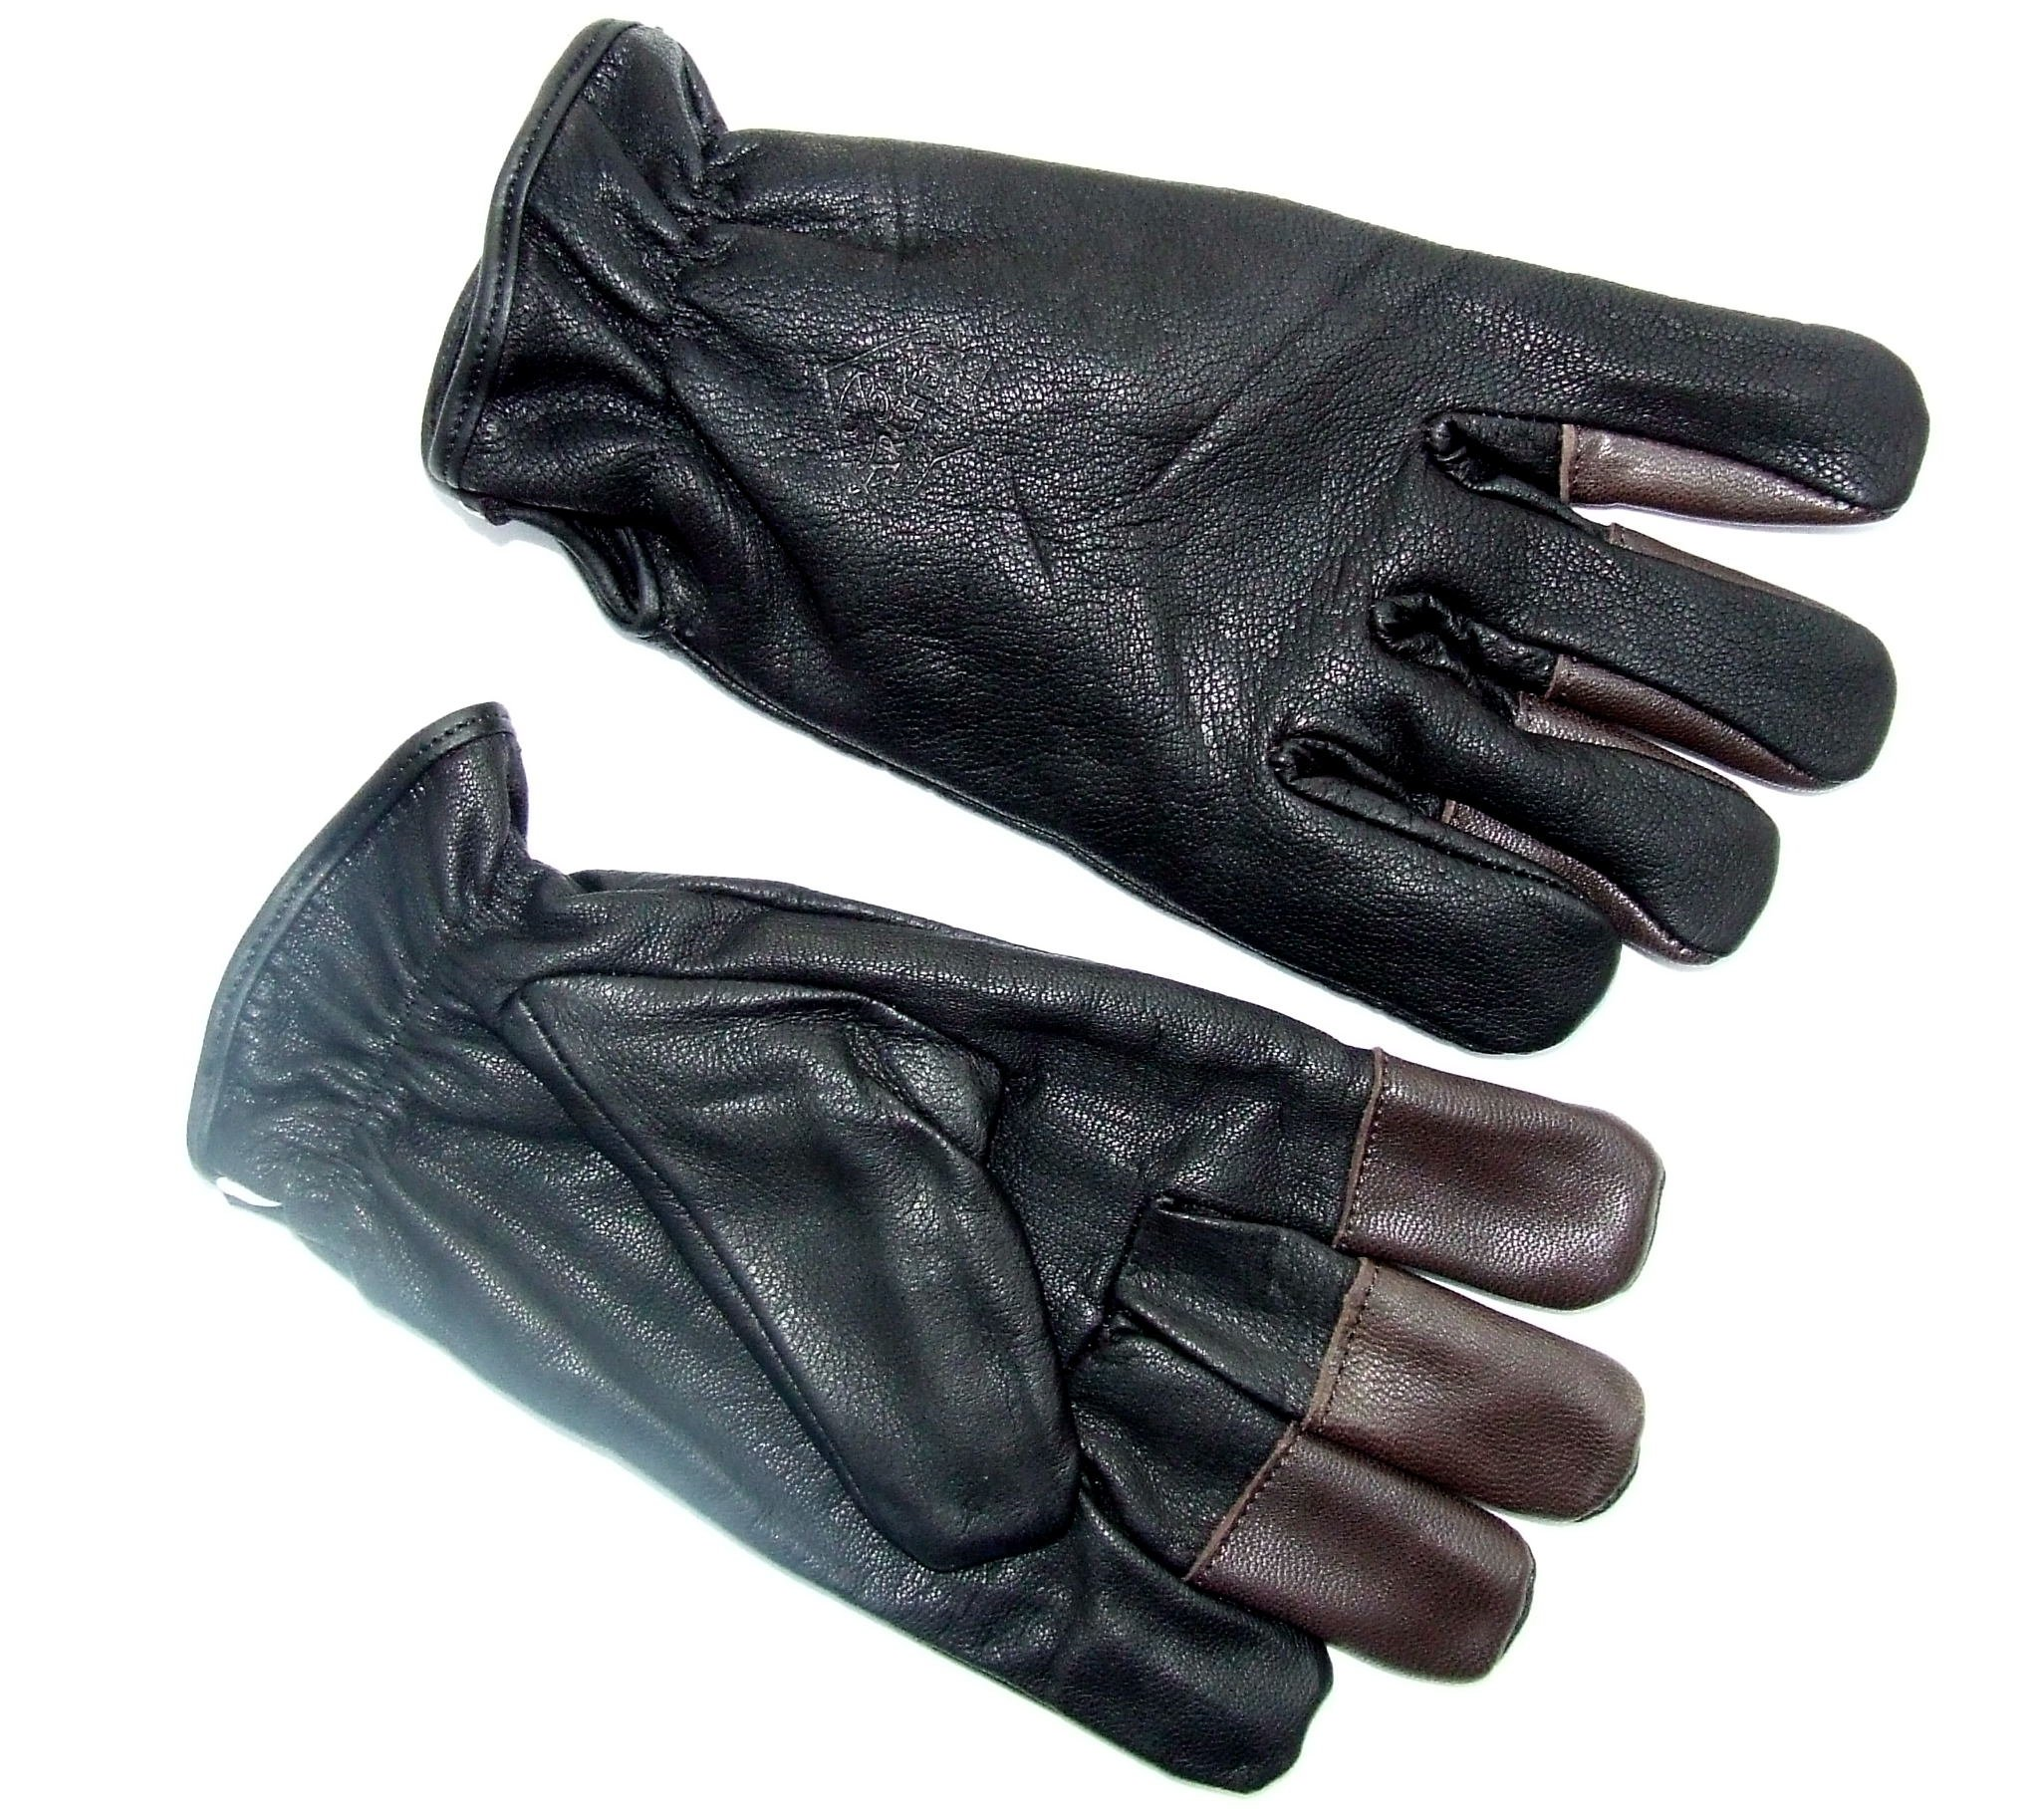 Big Tradition New Archery Leather Winter Shooting Gloves (Pair) (X-Large) by Big Tradition